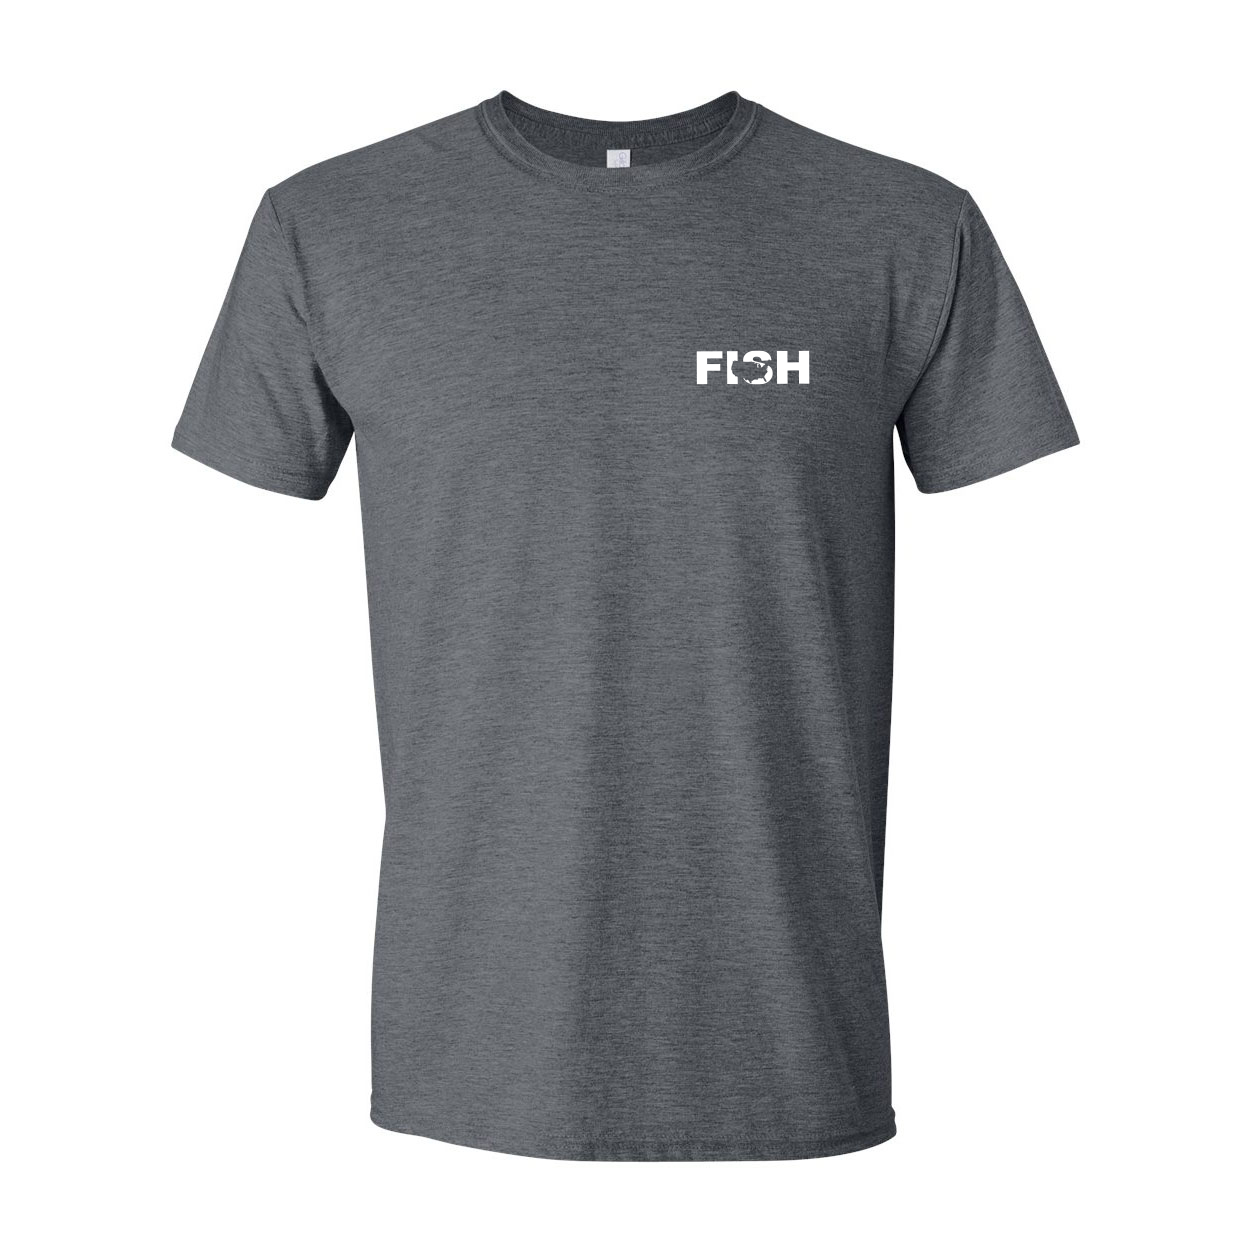 Fish United States Night Out T-Shirt Dark Heather Gray (White Logo)